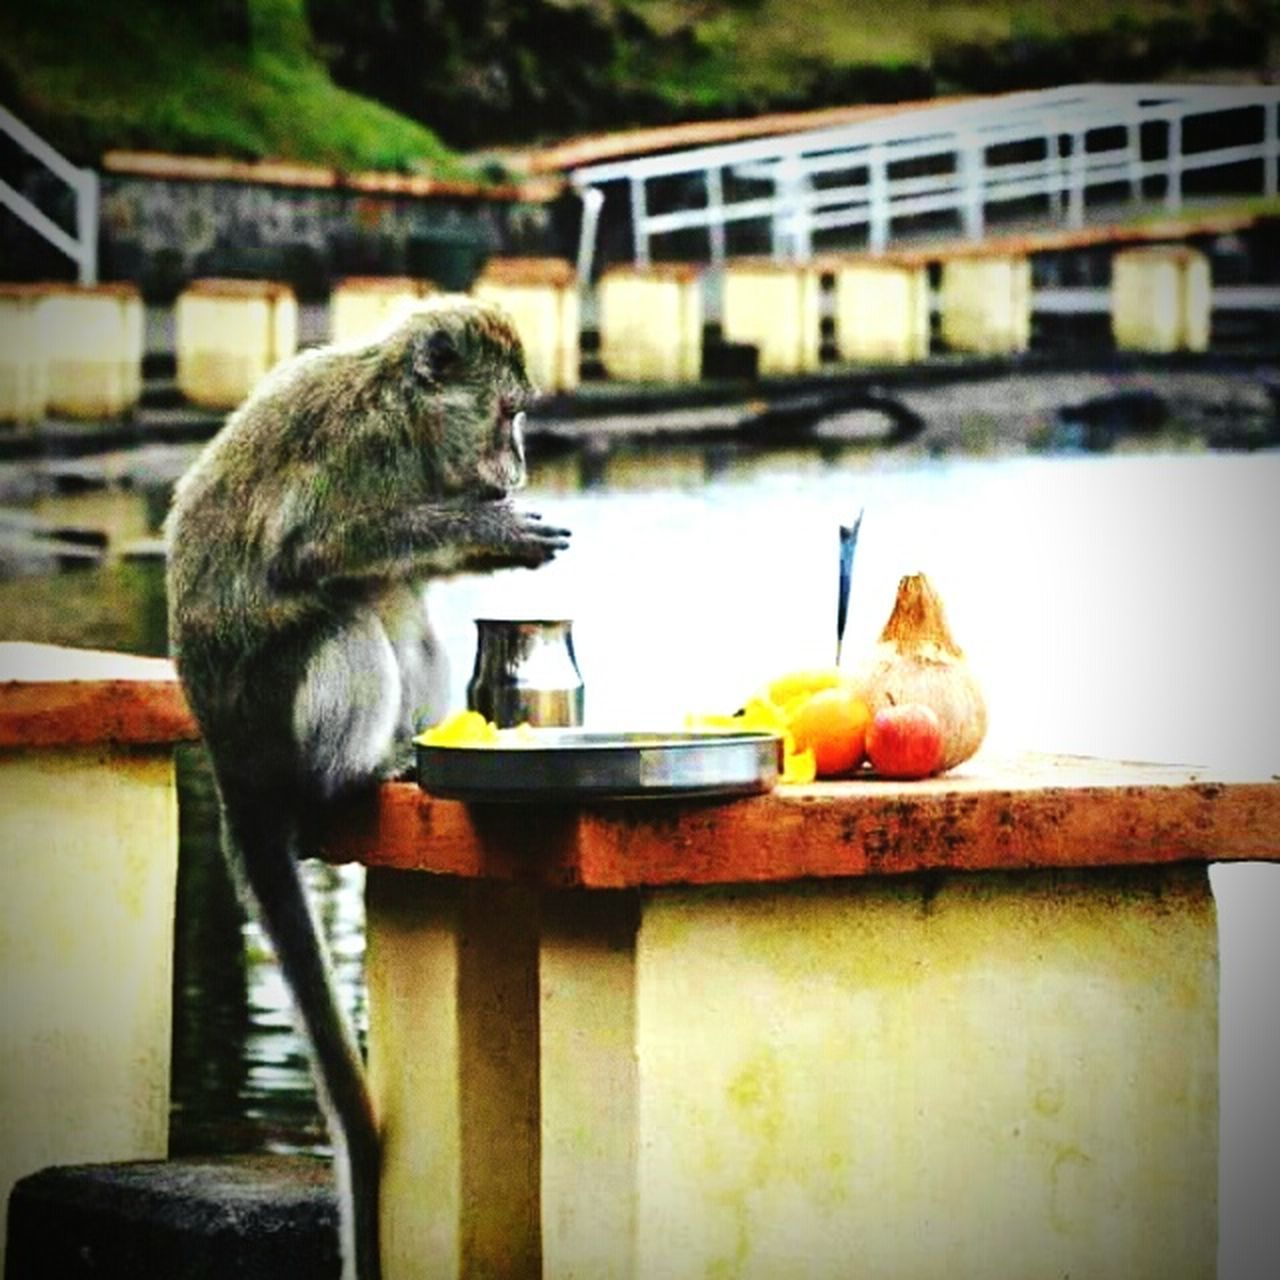 "Prayer forms a major part of human beings.... It is such that even animals diverge in the devotion of GOD as it is the example of this monkey... It may seem to be a coincidence but animals do seem to express their feelings and devotion to GOD as they also are on this earth as part of their Karma (actions) as Hinduism or any other religion postulates... We should do good actions to receive positive results as as we say ""As you Sow, So you Reap"" meaning whatever actions we do has its results in this birth or the other... And maybe animals pray even with more Devotion and Piouness than human beings who now have become victims of their own actions.. SO A MAJOR APPEAL, RESPECT ANIMALS.... Things I LikeEyeEm Things I Like Photography Devotion Religion Monkey Monkeys Praying Monkey Respect Animals Food Grand Bassin Banana Coconut Incense Sticks Hindu Temple Hinduism Hindu Hanuman Hanumanji Karma Rebirth Actions As You Sow So You Reap"